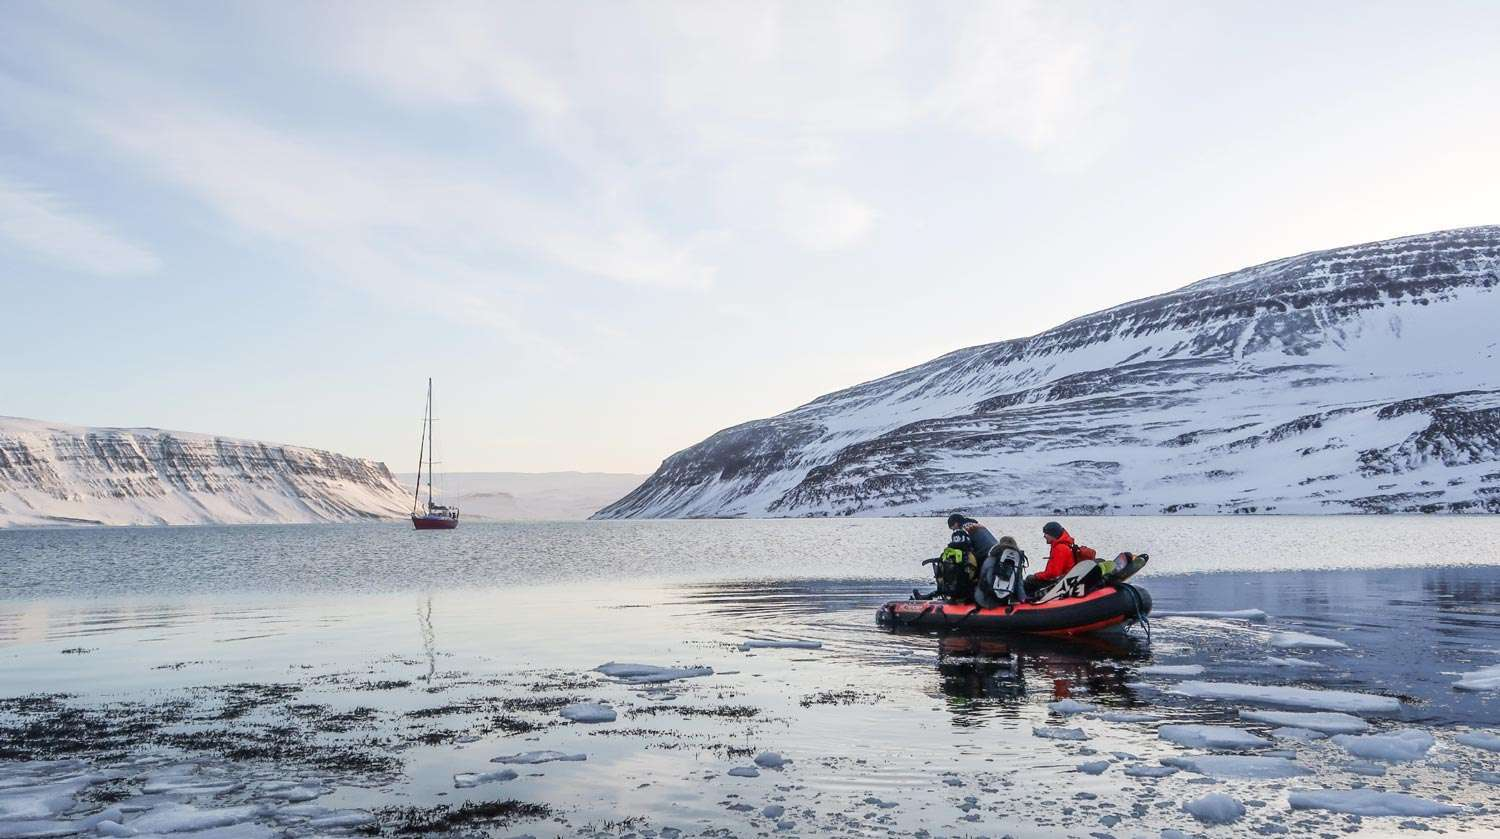 greenland ski and sail in the arctic